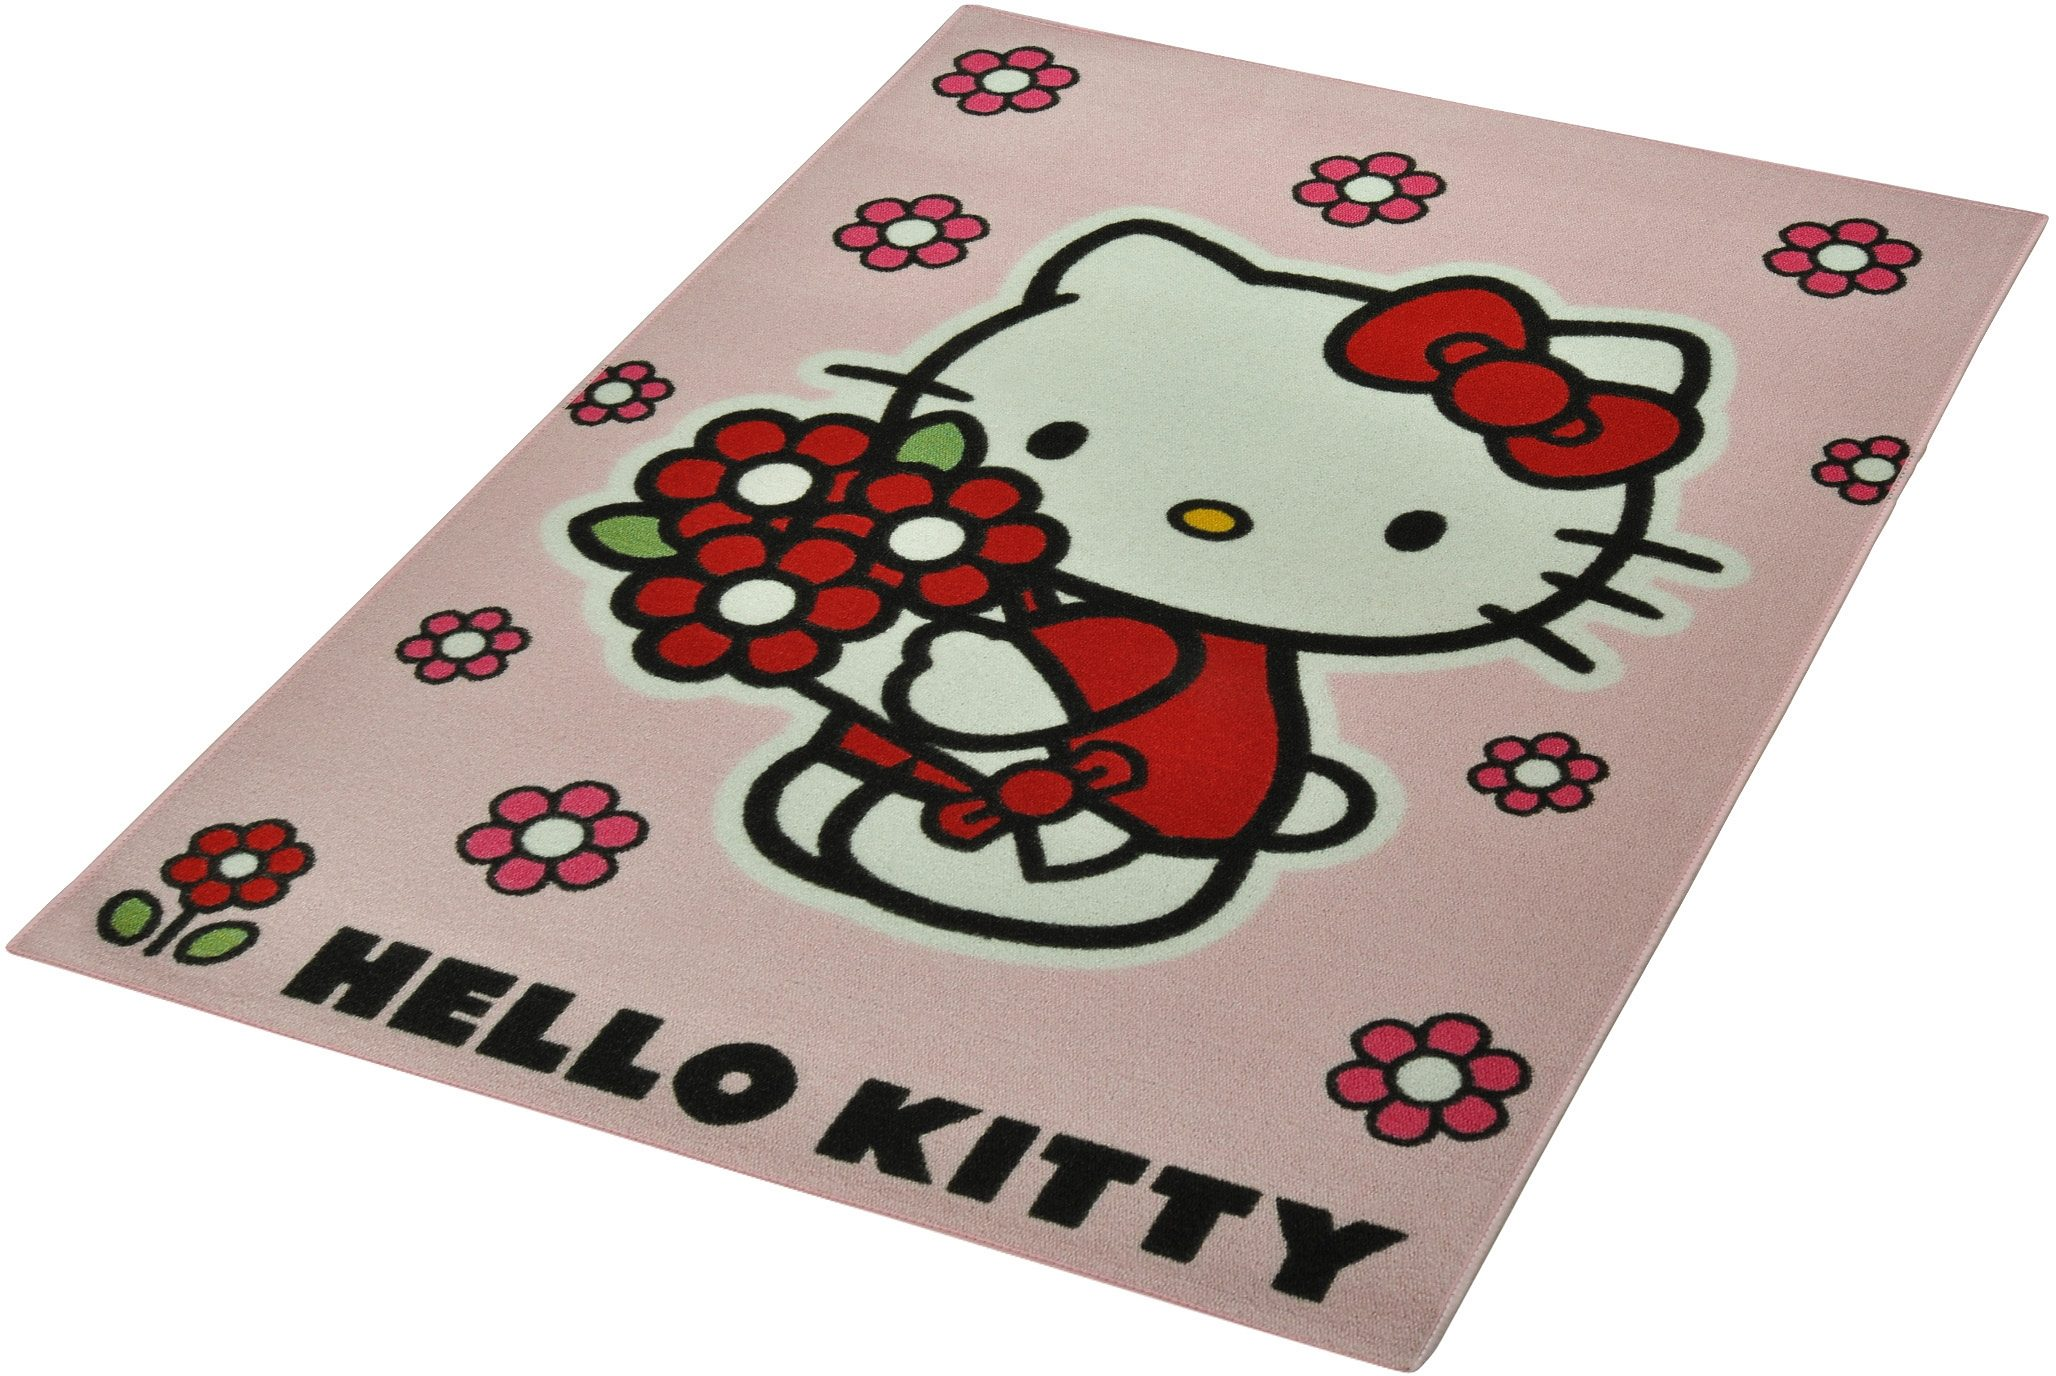 Kinder-Teppich, Hello Kitty Lizenz Teppich »Hello Kitty - Flower«, getuftet